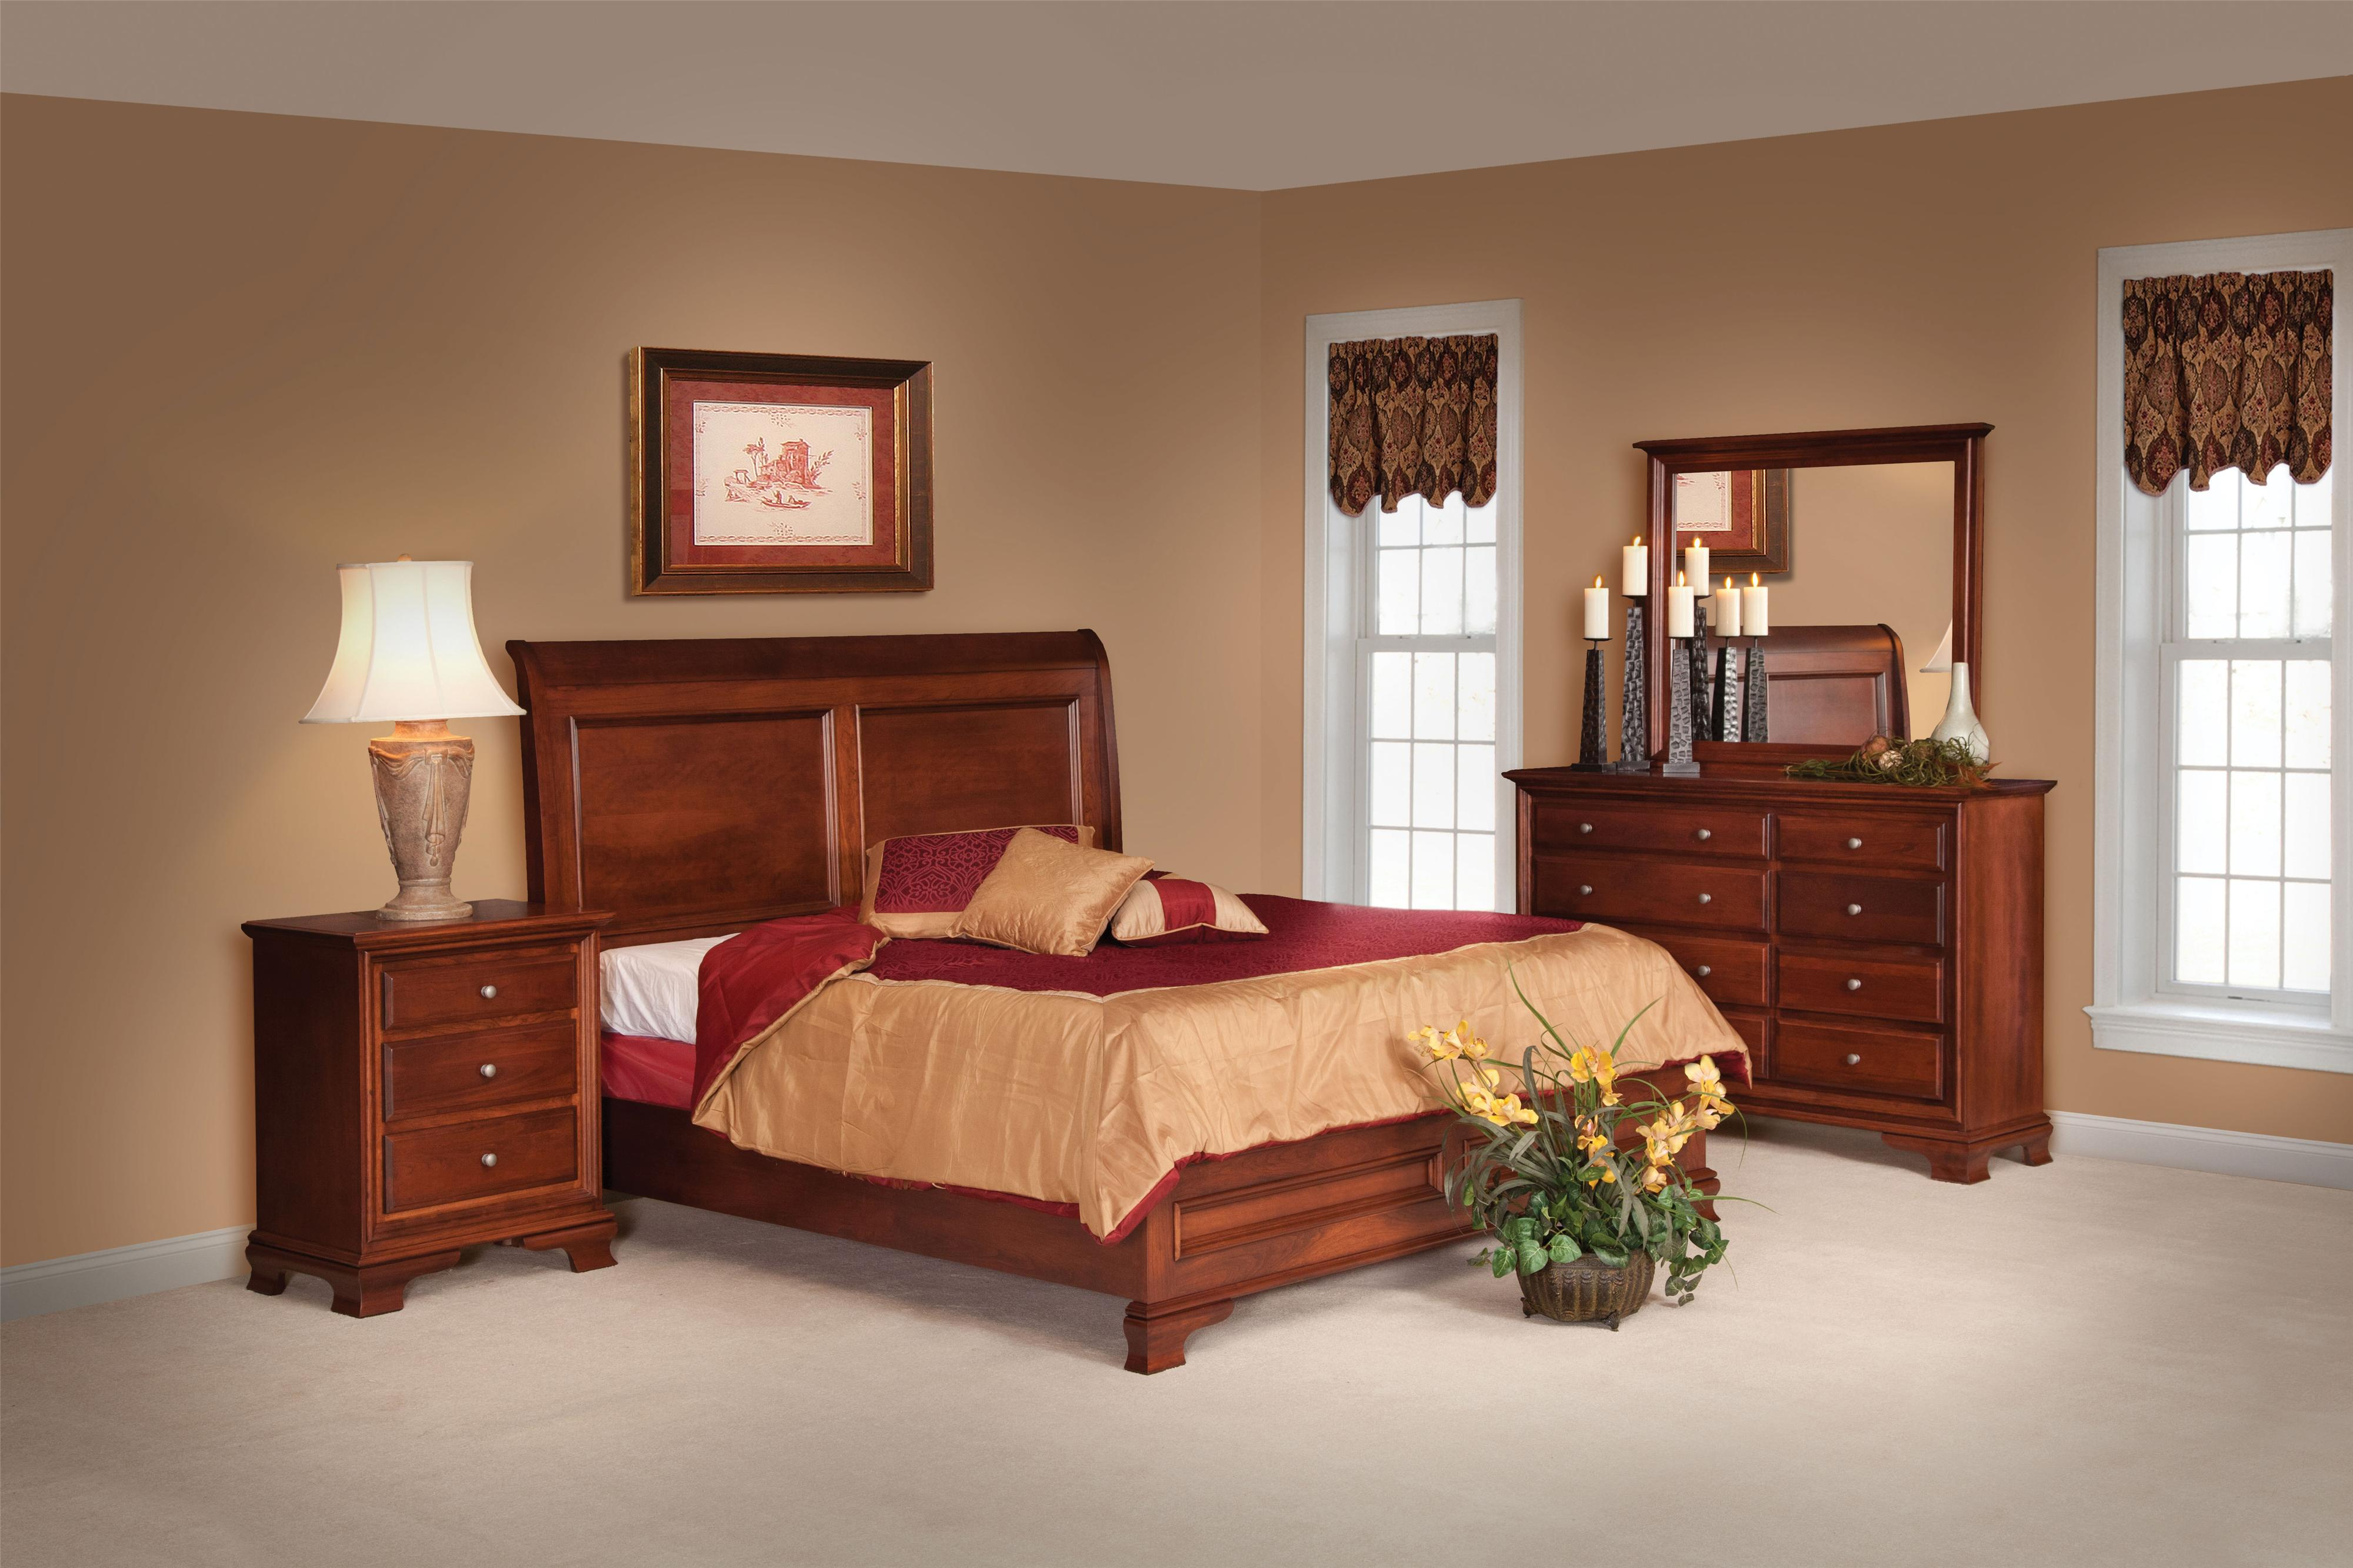 Classic Queen Bedroom Group by Daniels Amish at Virginia Furniture Market